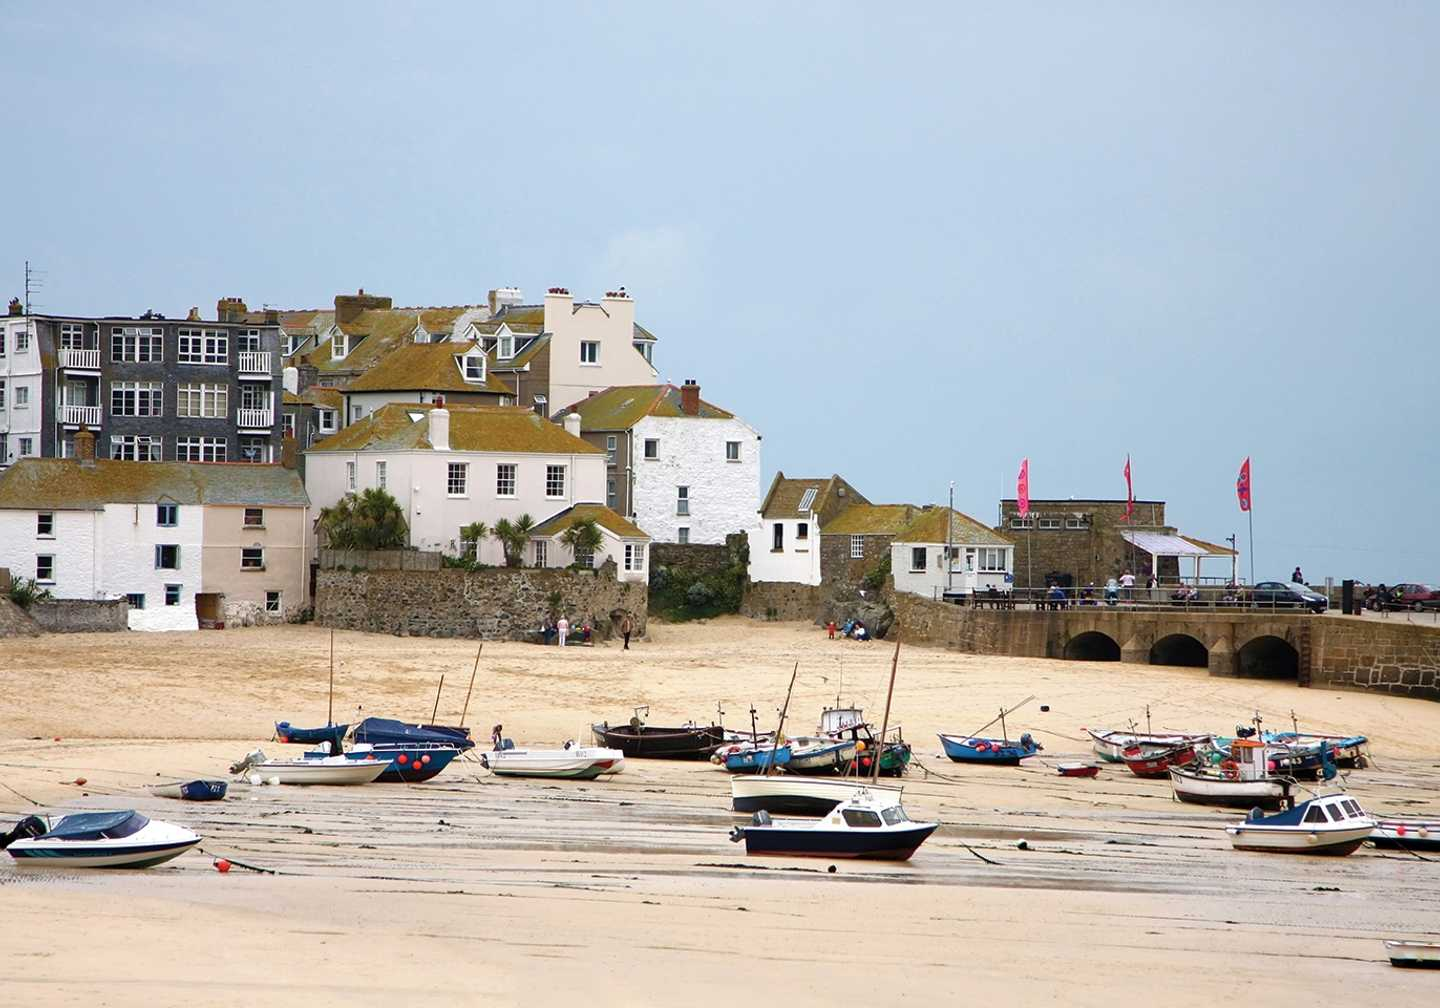 Cottages and boats along the St Ives harbour